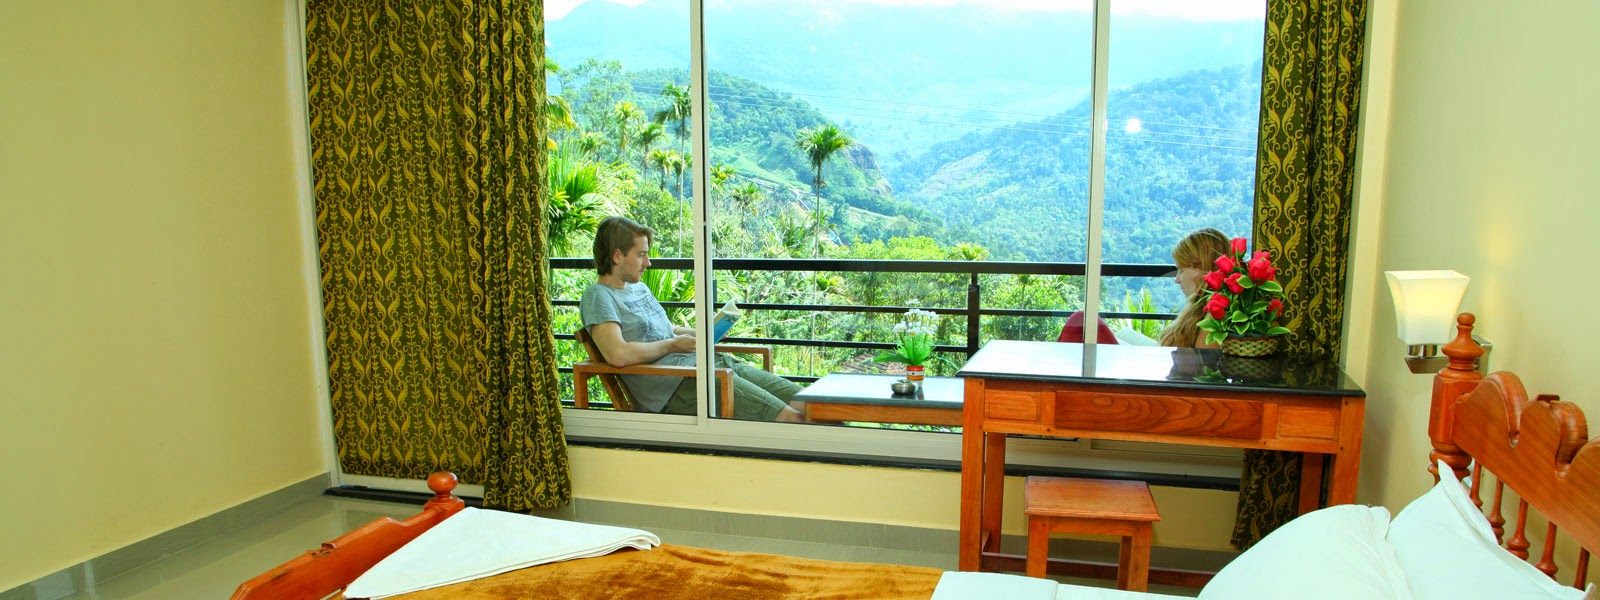 Get Best Deal for Green Valley Resort Munna, Online Booking for Green Valley Munnar, Budget Family Resort in Munnar with Valley View